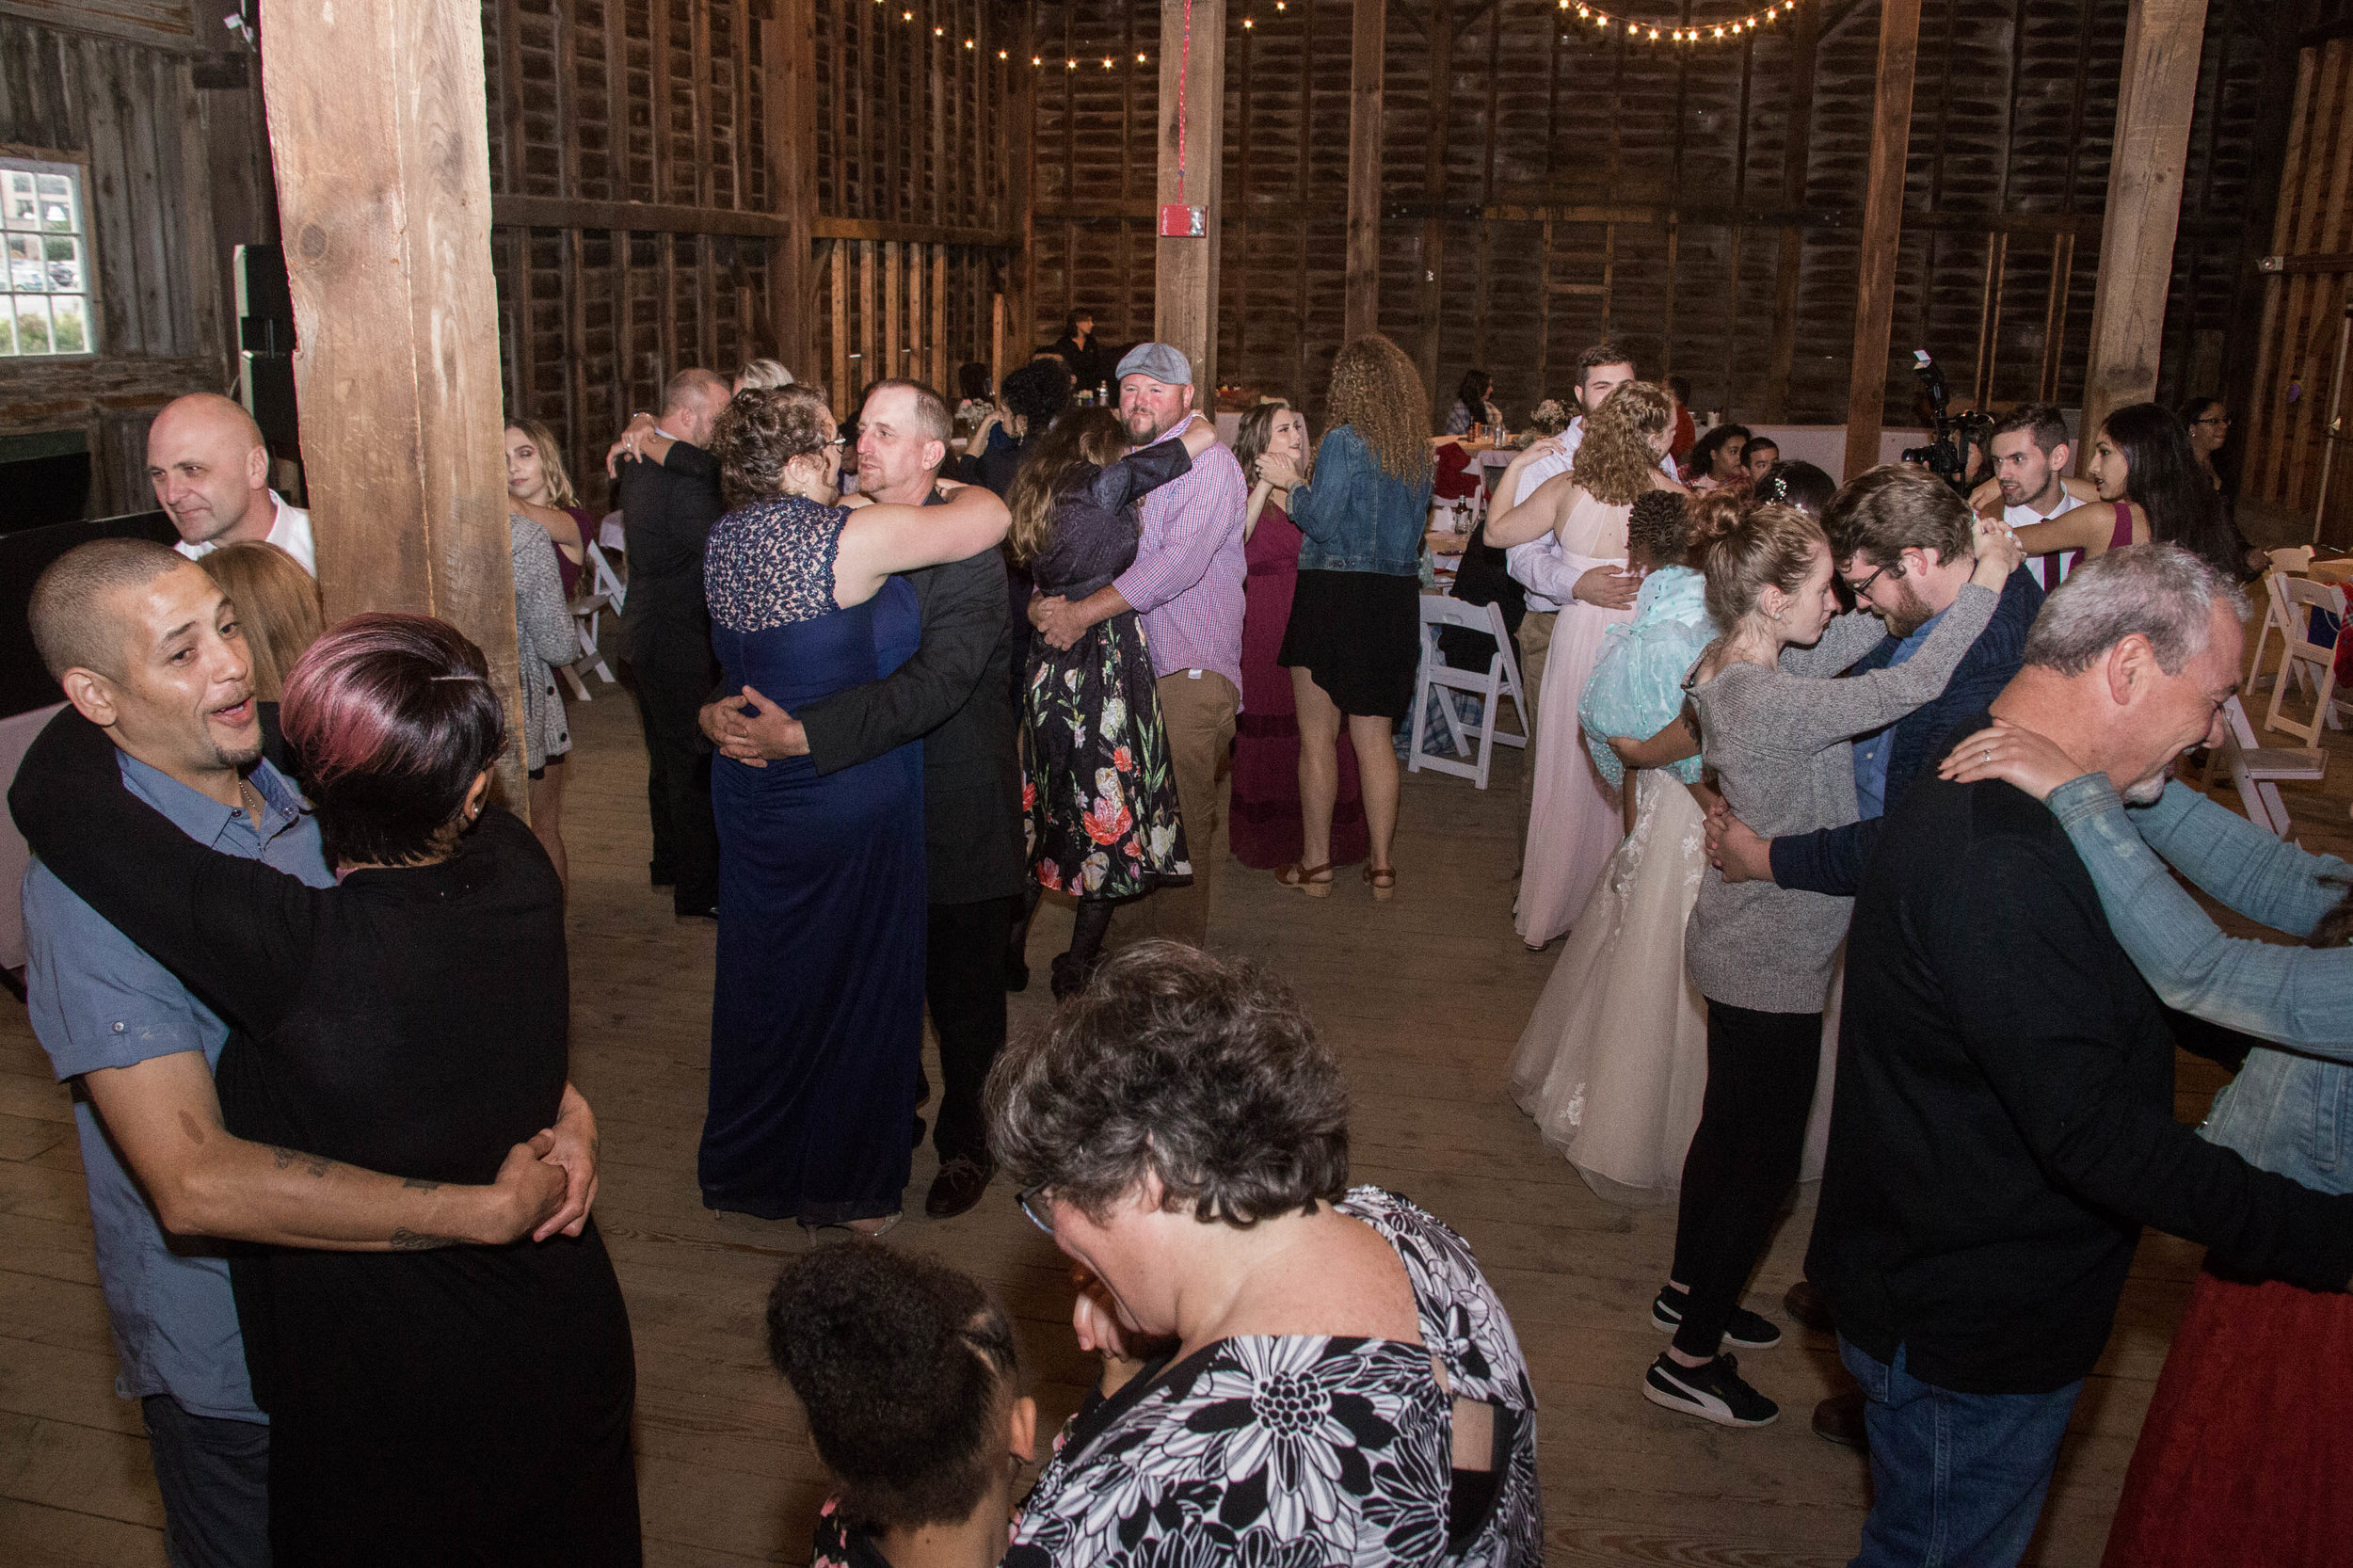 shaker_heritage_barn_wedding_013.jpg